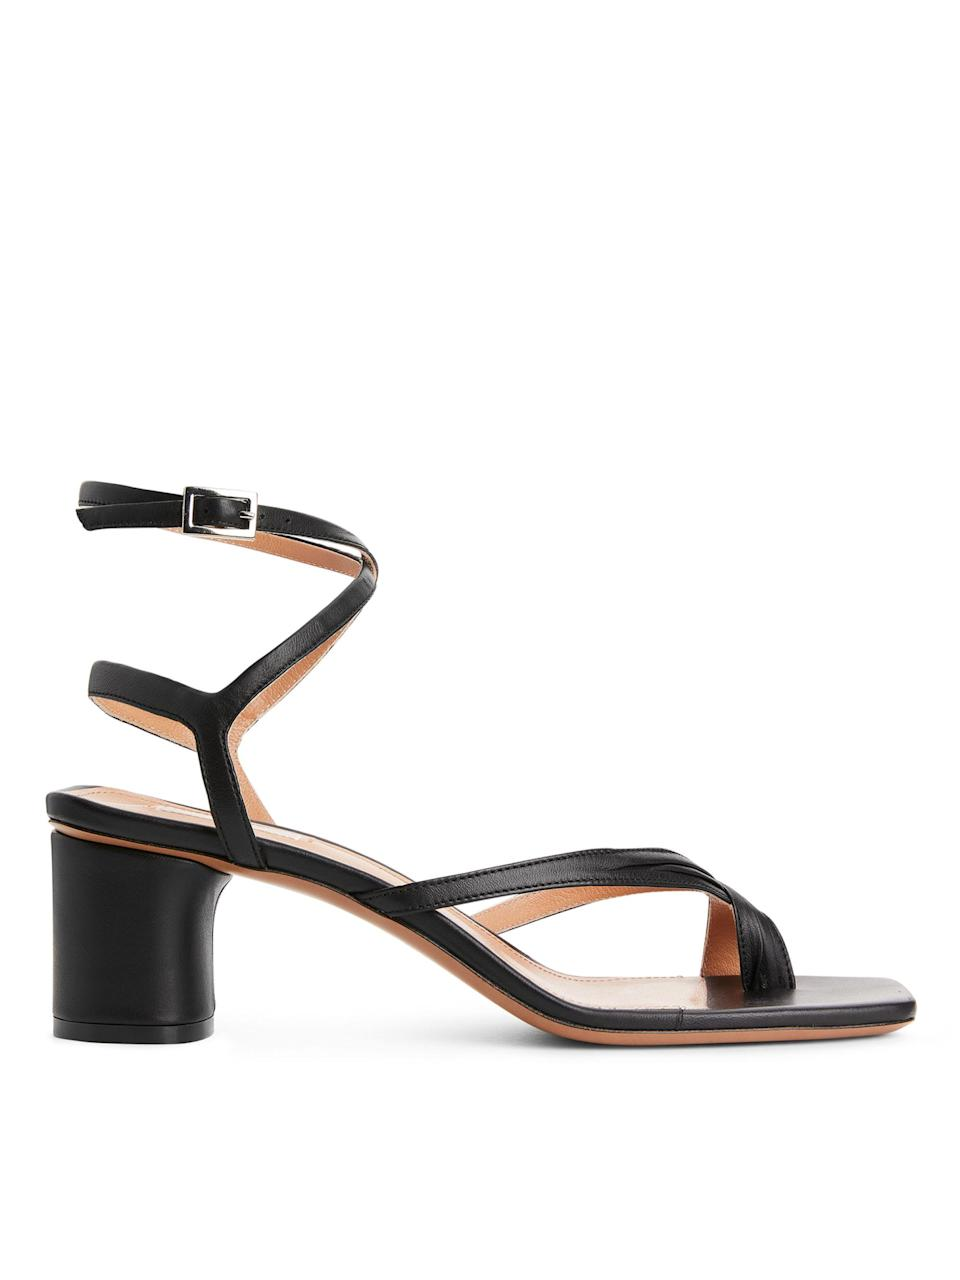 "<p><span>We all need a do-all black sandal to see us through summer, so why not put your money to a gorgoeus leather pair that will look good with anything? Hey, like these. </span><br><em><a href=""https://www.arket.com/en_gbp/women/shoes/product.ankle-wrap-leather-sandal-black.0650566001.html"" rel=""nofollow noopener"" target=""_blank"" data-ylk=""slk:Buy here."" class=""link rapid-noclick-resp""><span>Buy here.</span></a></em> </p>"